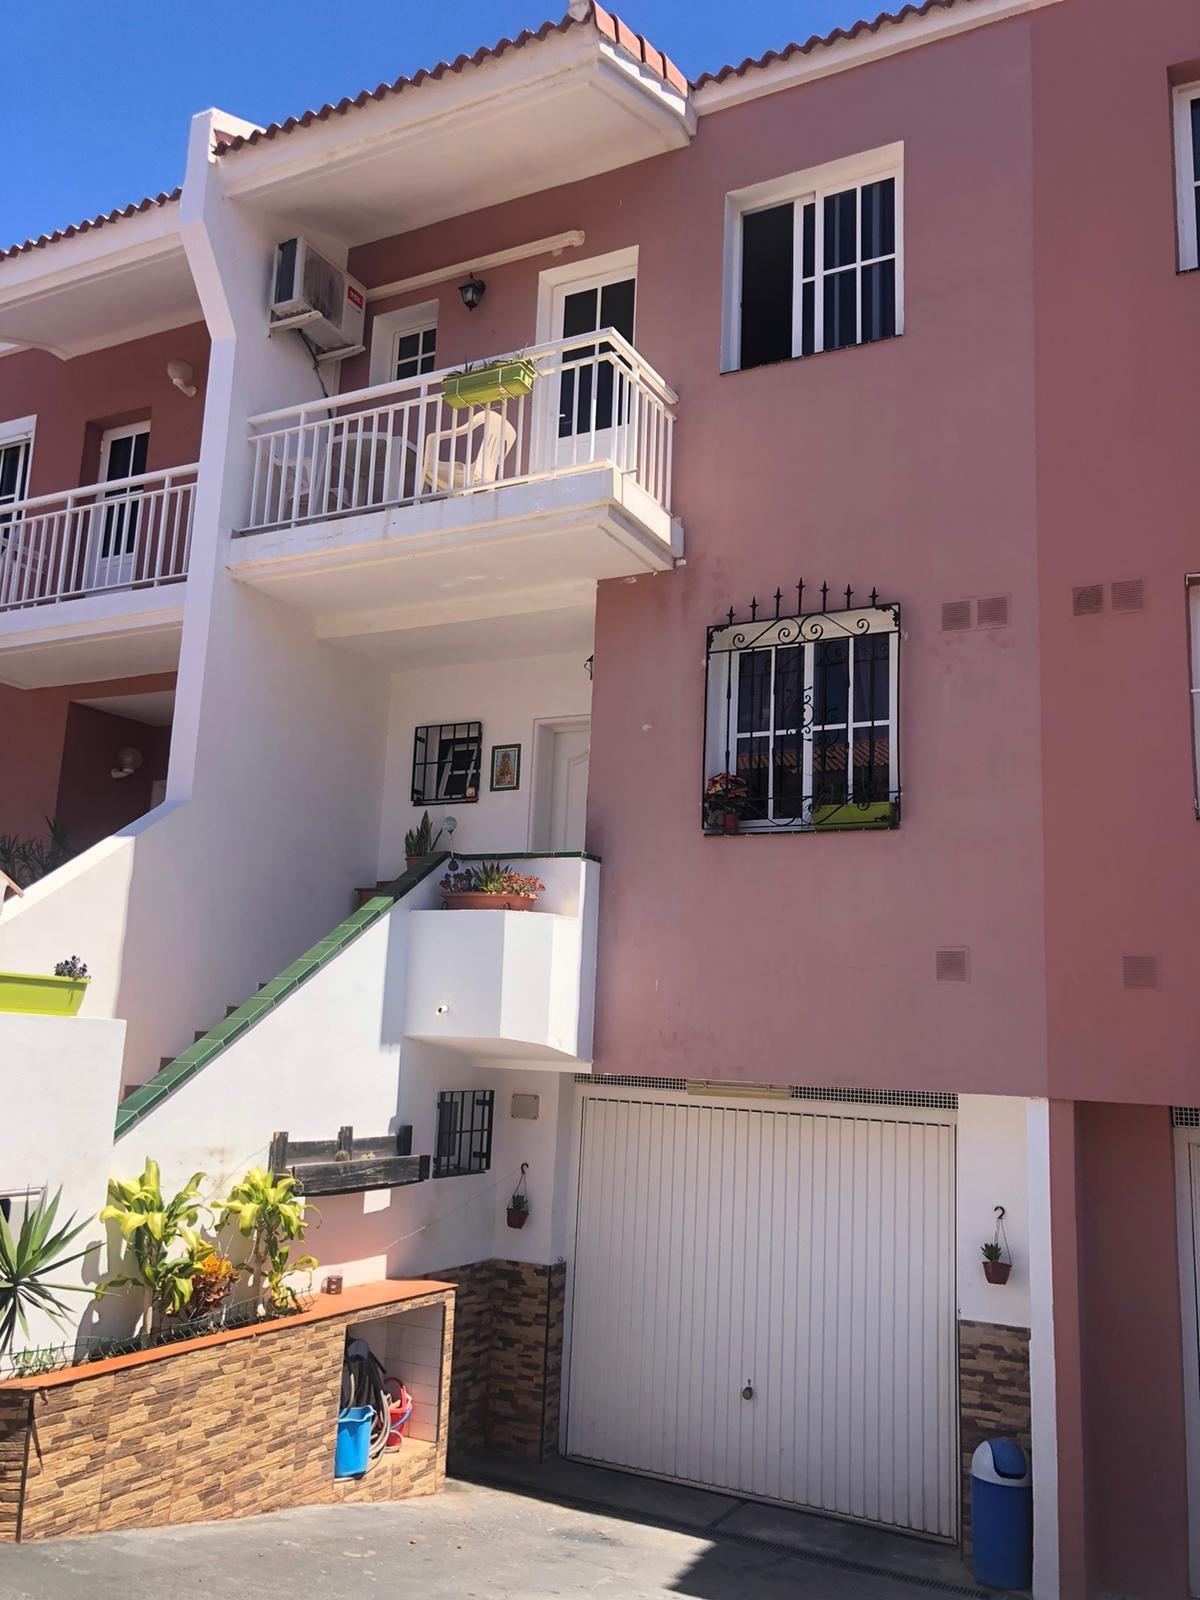 This town house offers you 4 bedrooms and 3 bathrooms (1 en suite). The 3 story building .... more info